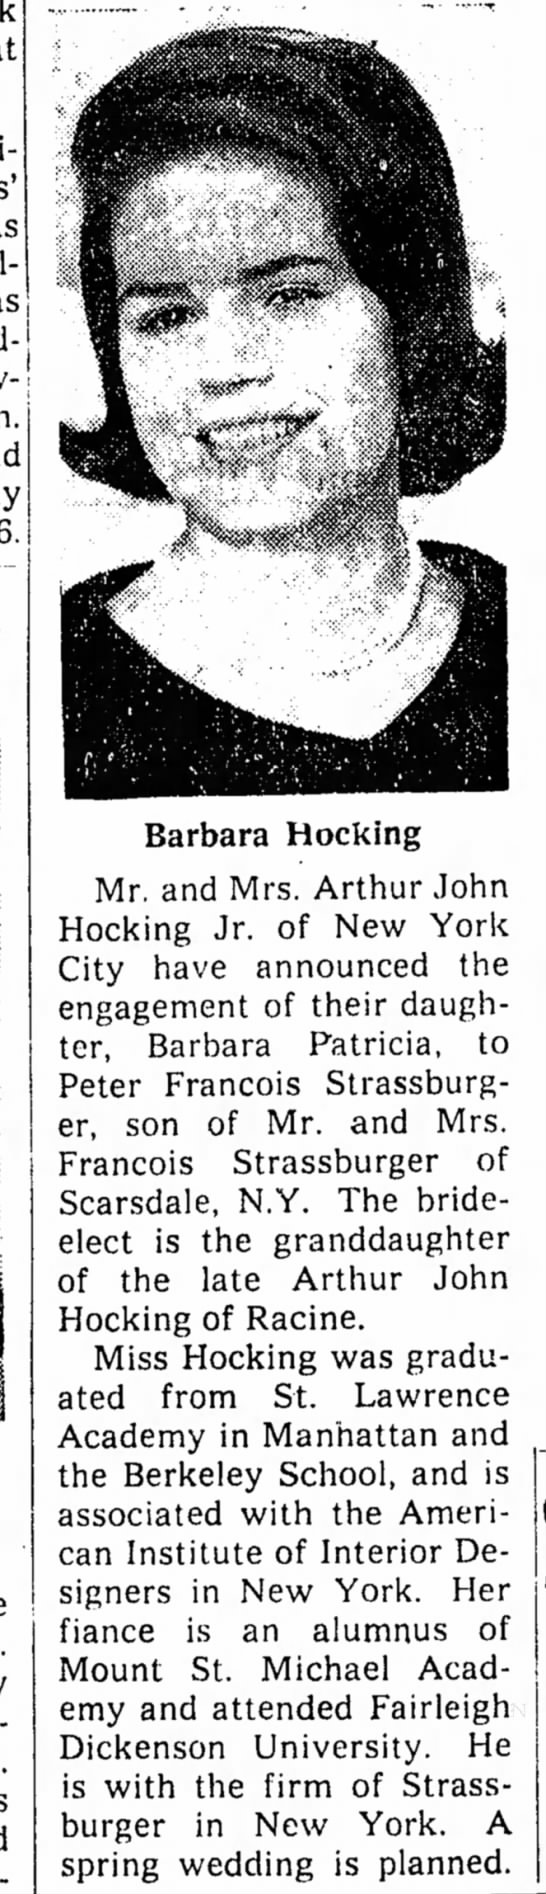 barb hocking engaged - Barbara Hocking Mr. and Mrs. Arthur John...